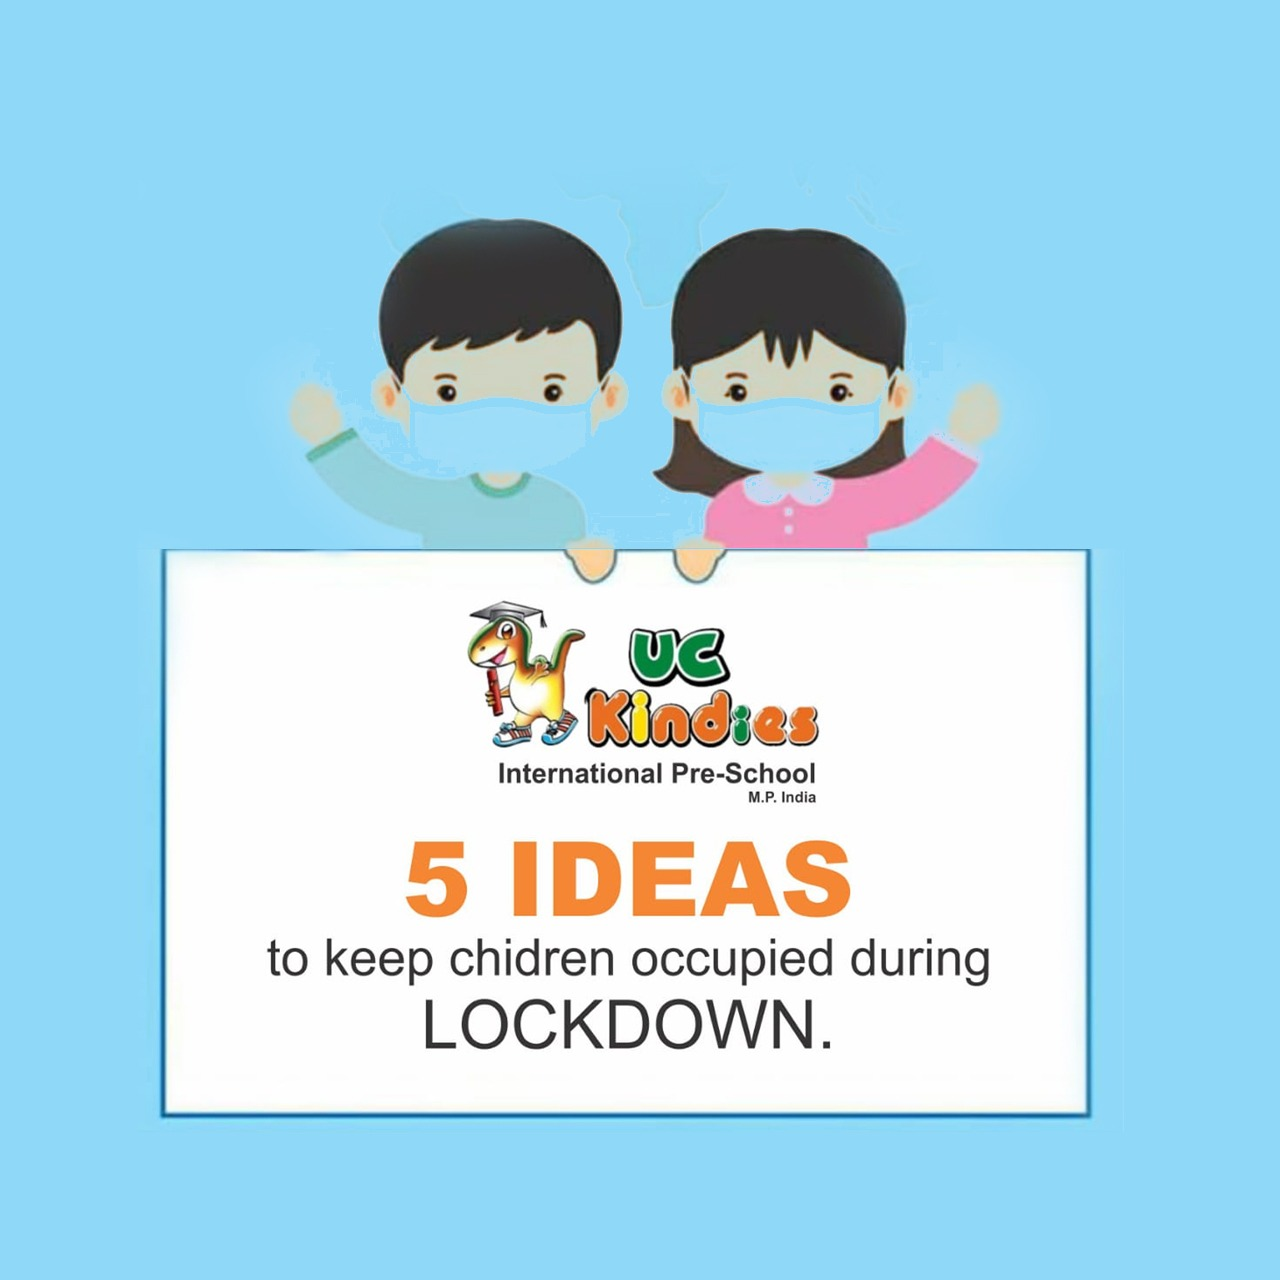 5 Ideas To Keep Children Occupied During Lockdown